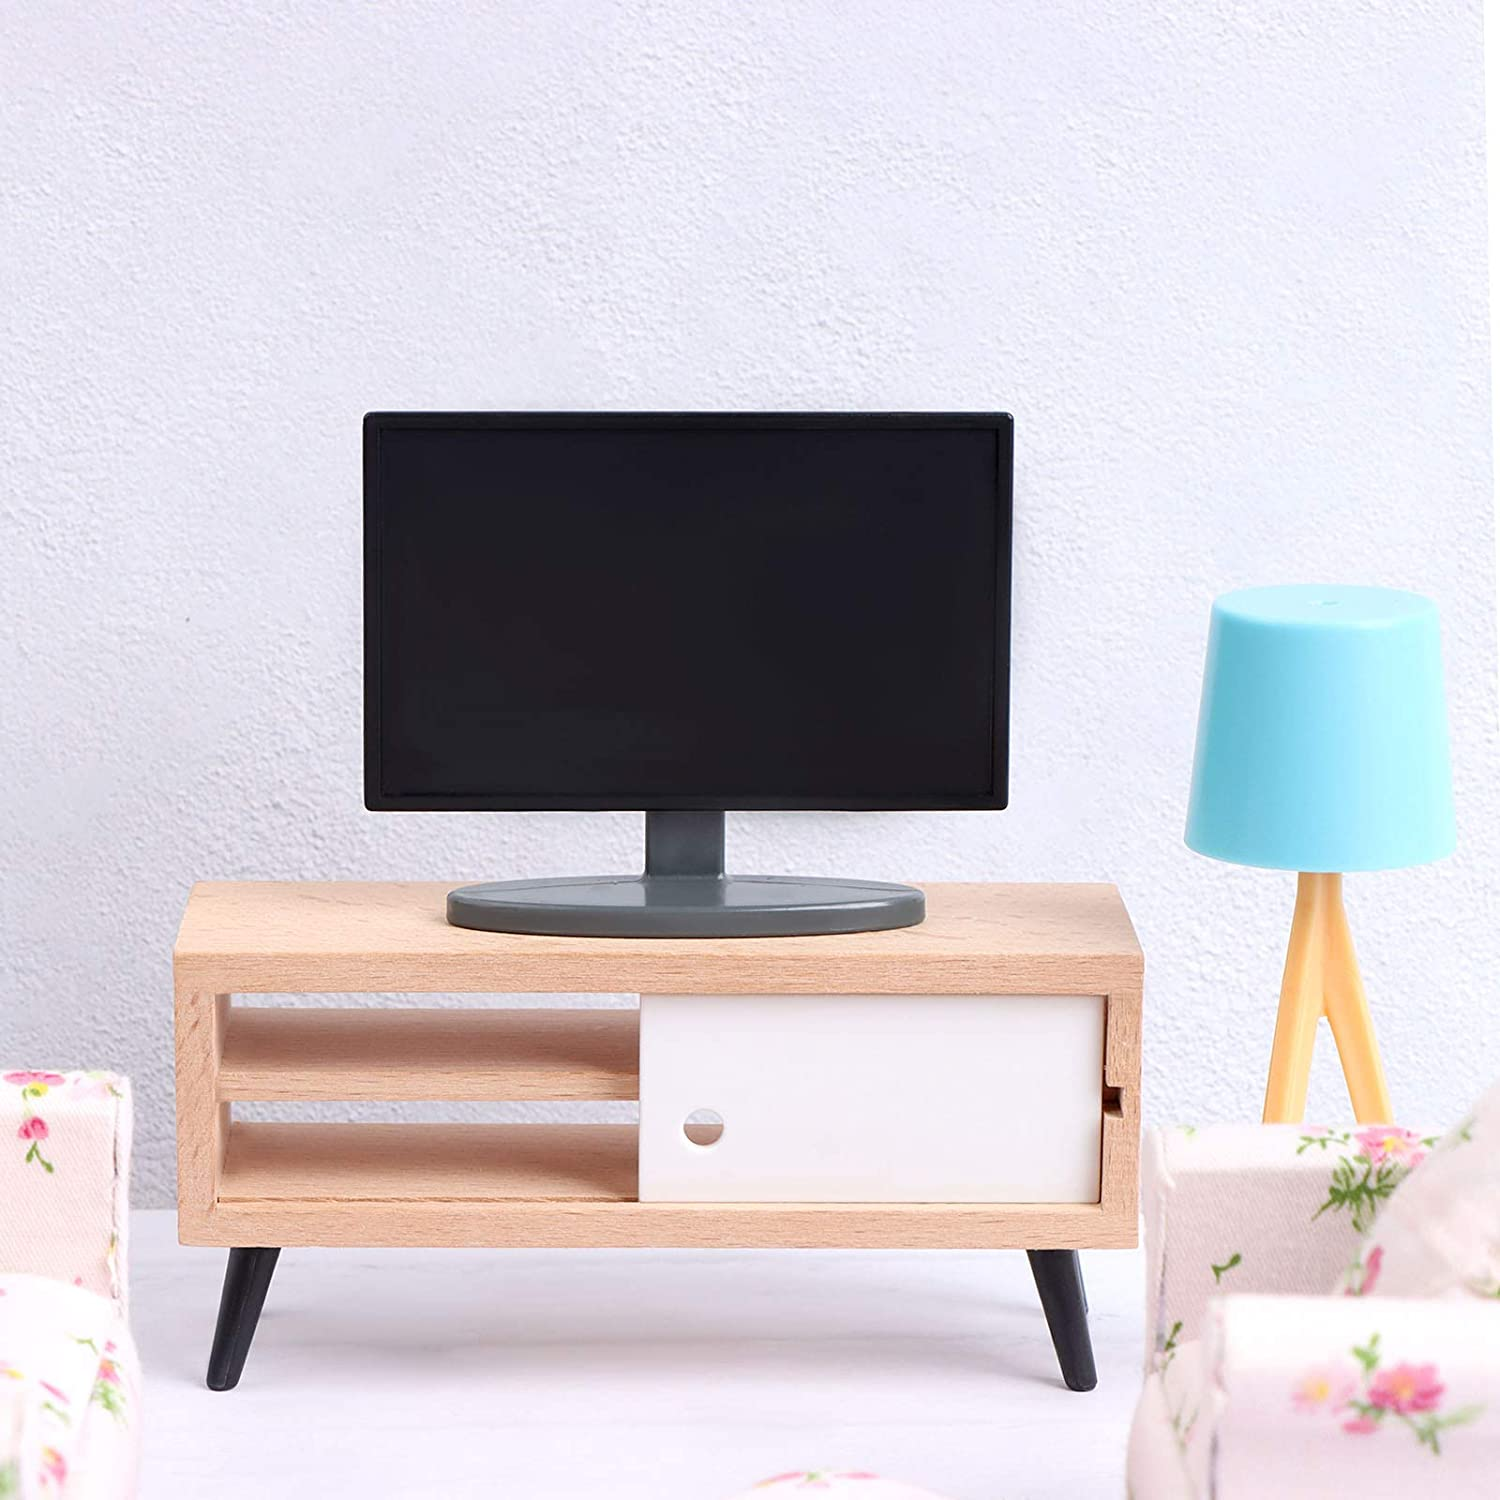 TV Sofa Bookcase Doll Pretend Play Accessories Living Room Model Handcraft Kit TV Cabinet Dollhouse Miniature Furniture Dollhouse Living Room Set Coffee Table